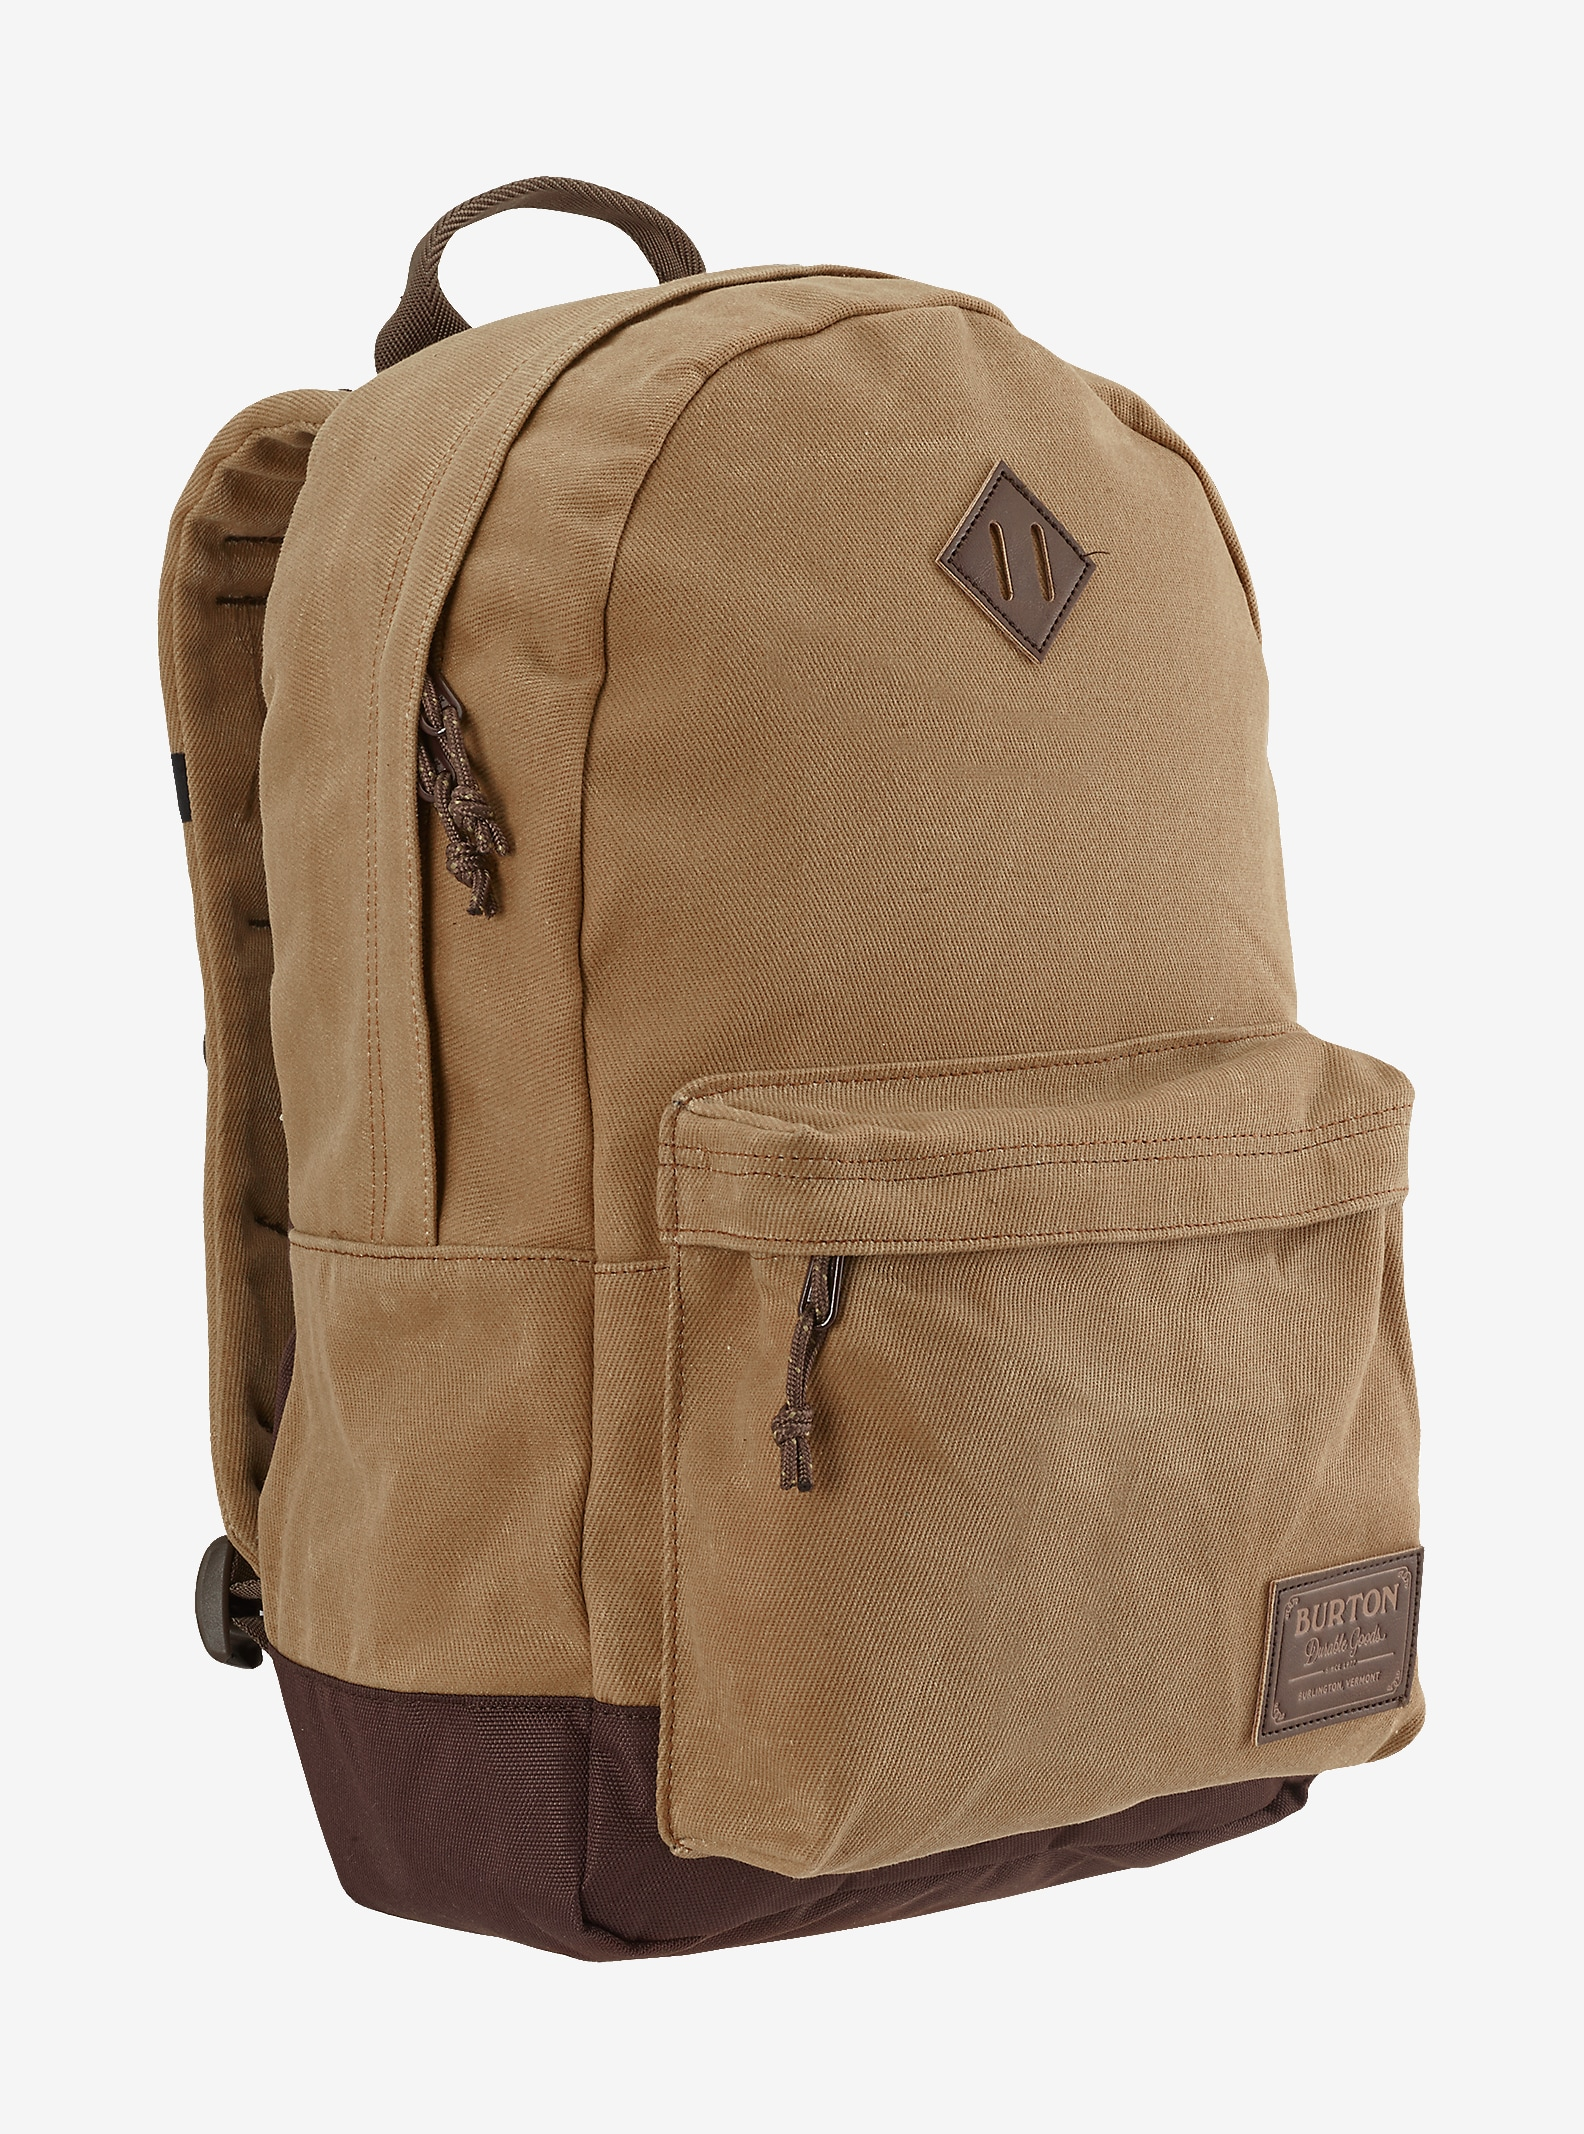 Burton Kettle Backpack shown in Beagle Brown Waxed Canvas